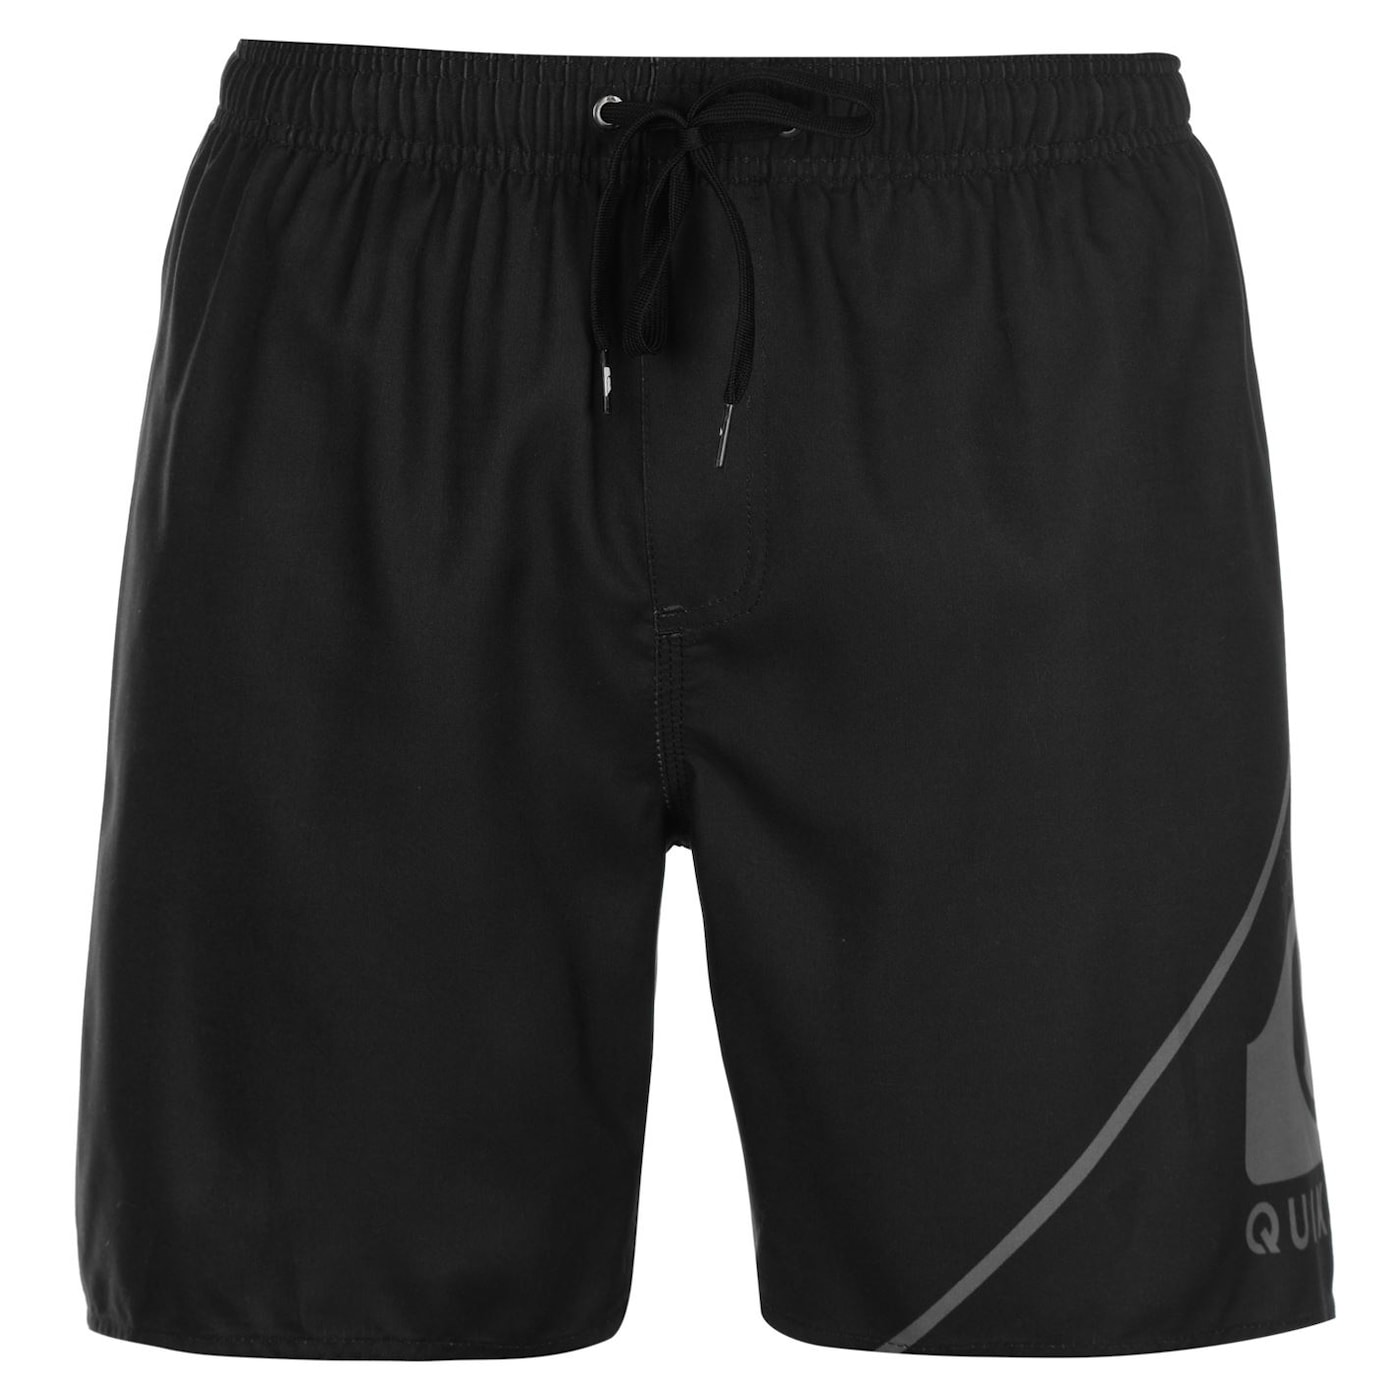 Quiksilver Wave Board Shorts Mens